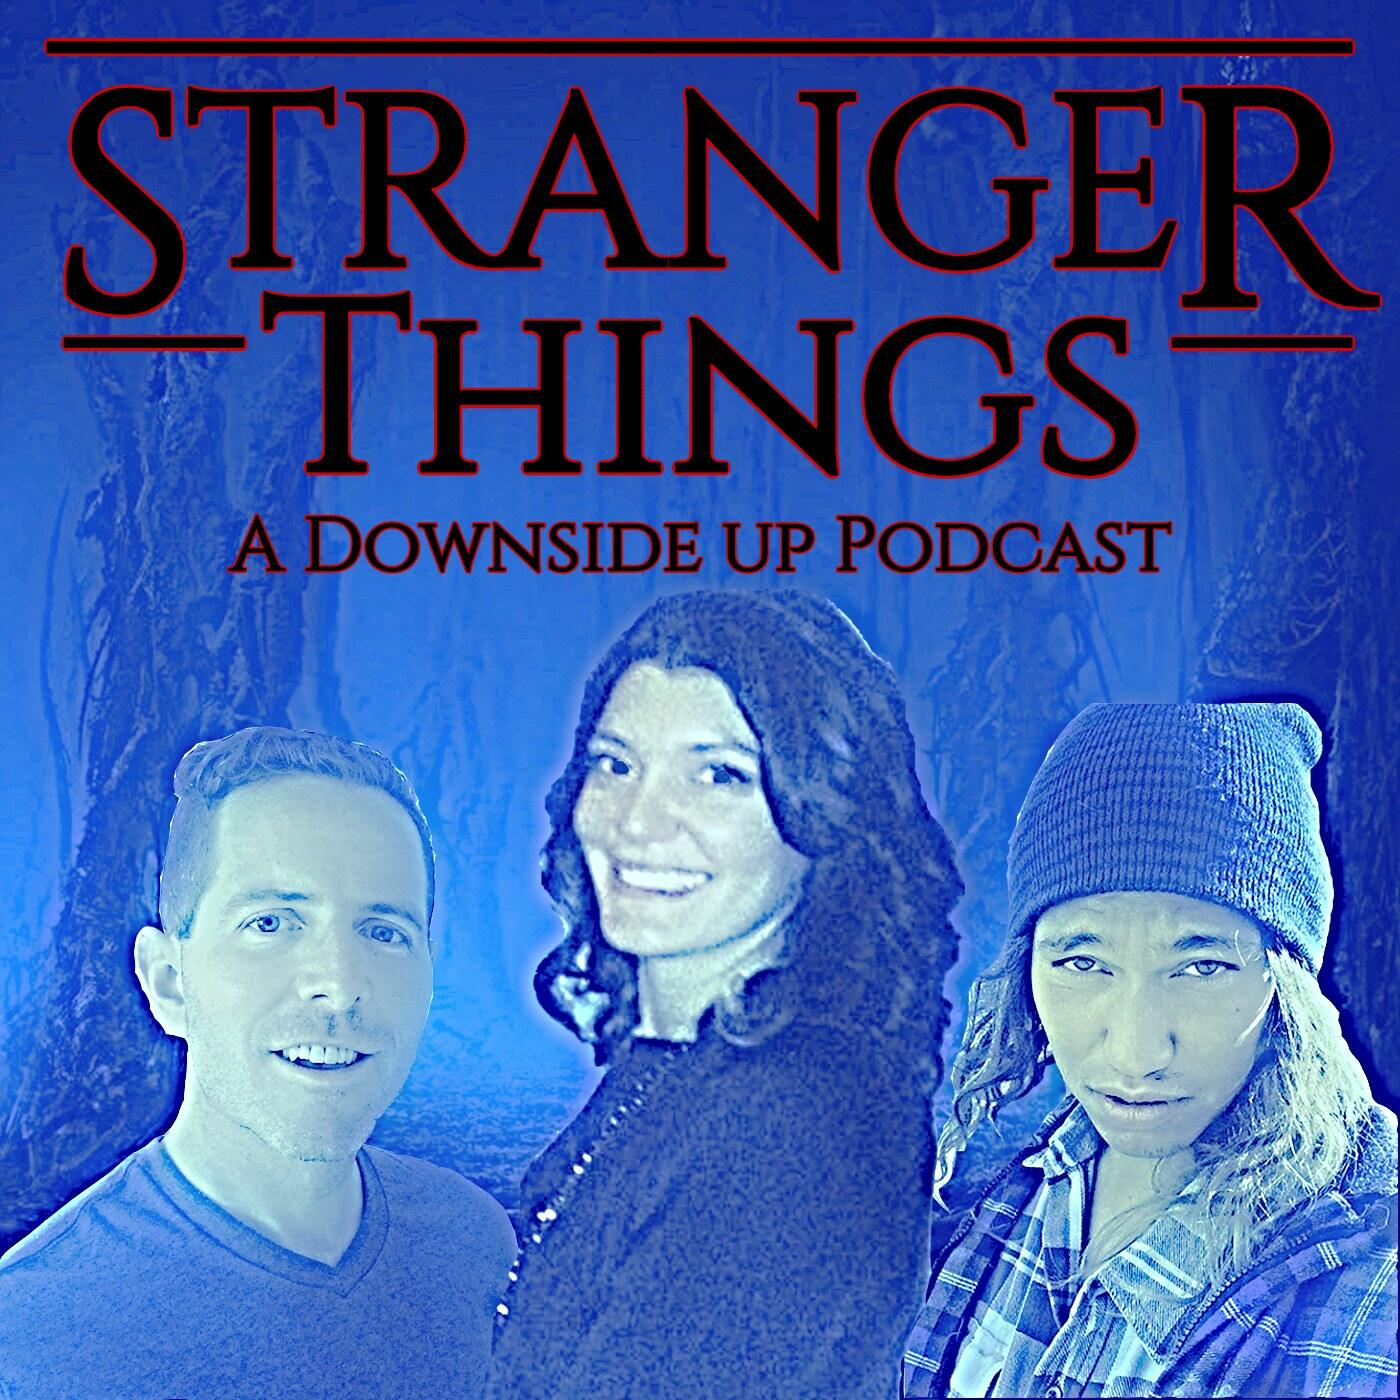 Stranger Things: A Downside Up Podcast